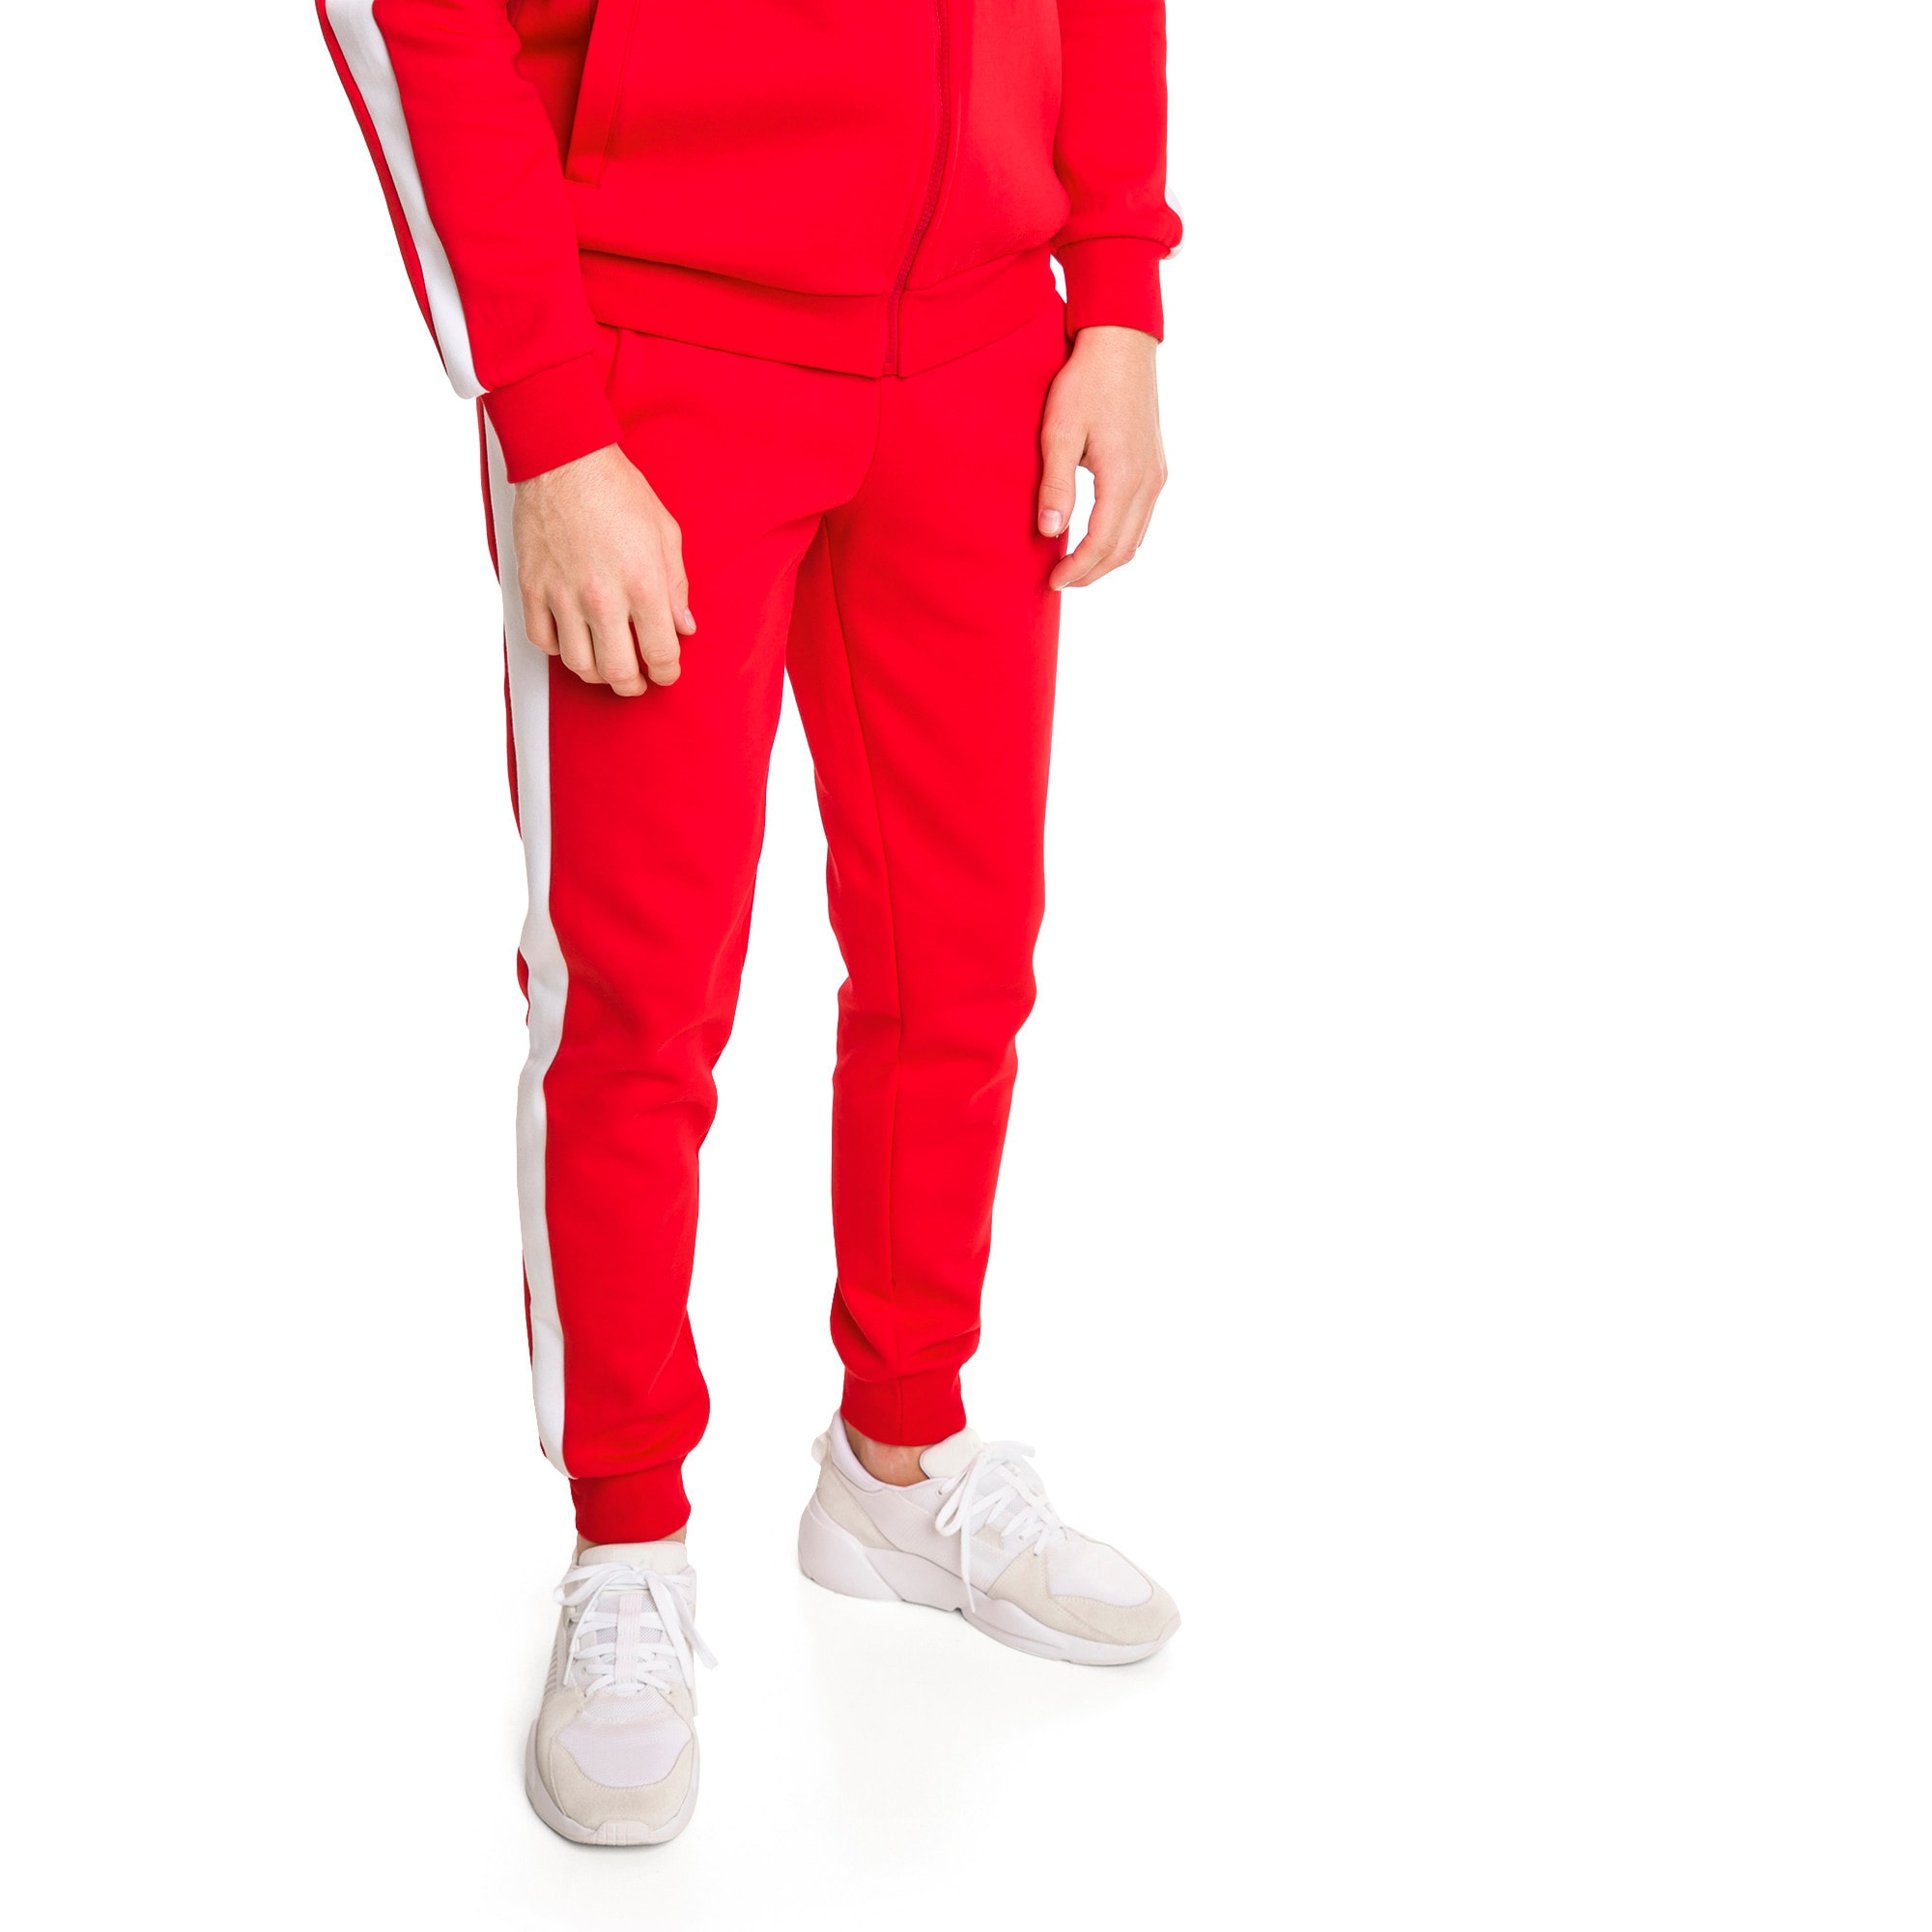 Thumbnail 2 of Archive Iconic T7 Double Knit Men's Track Pants, High Risk Red, medium